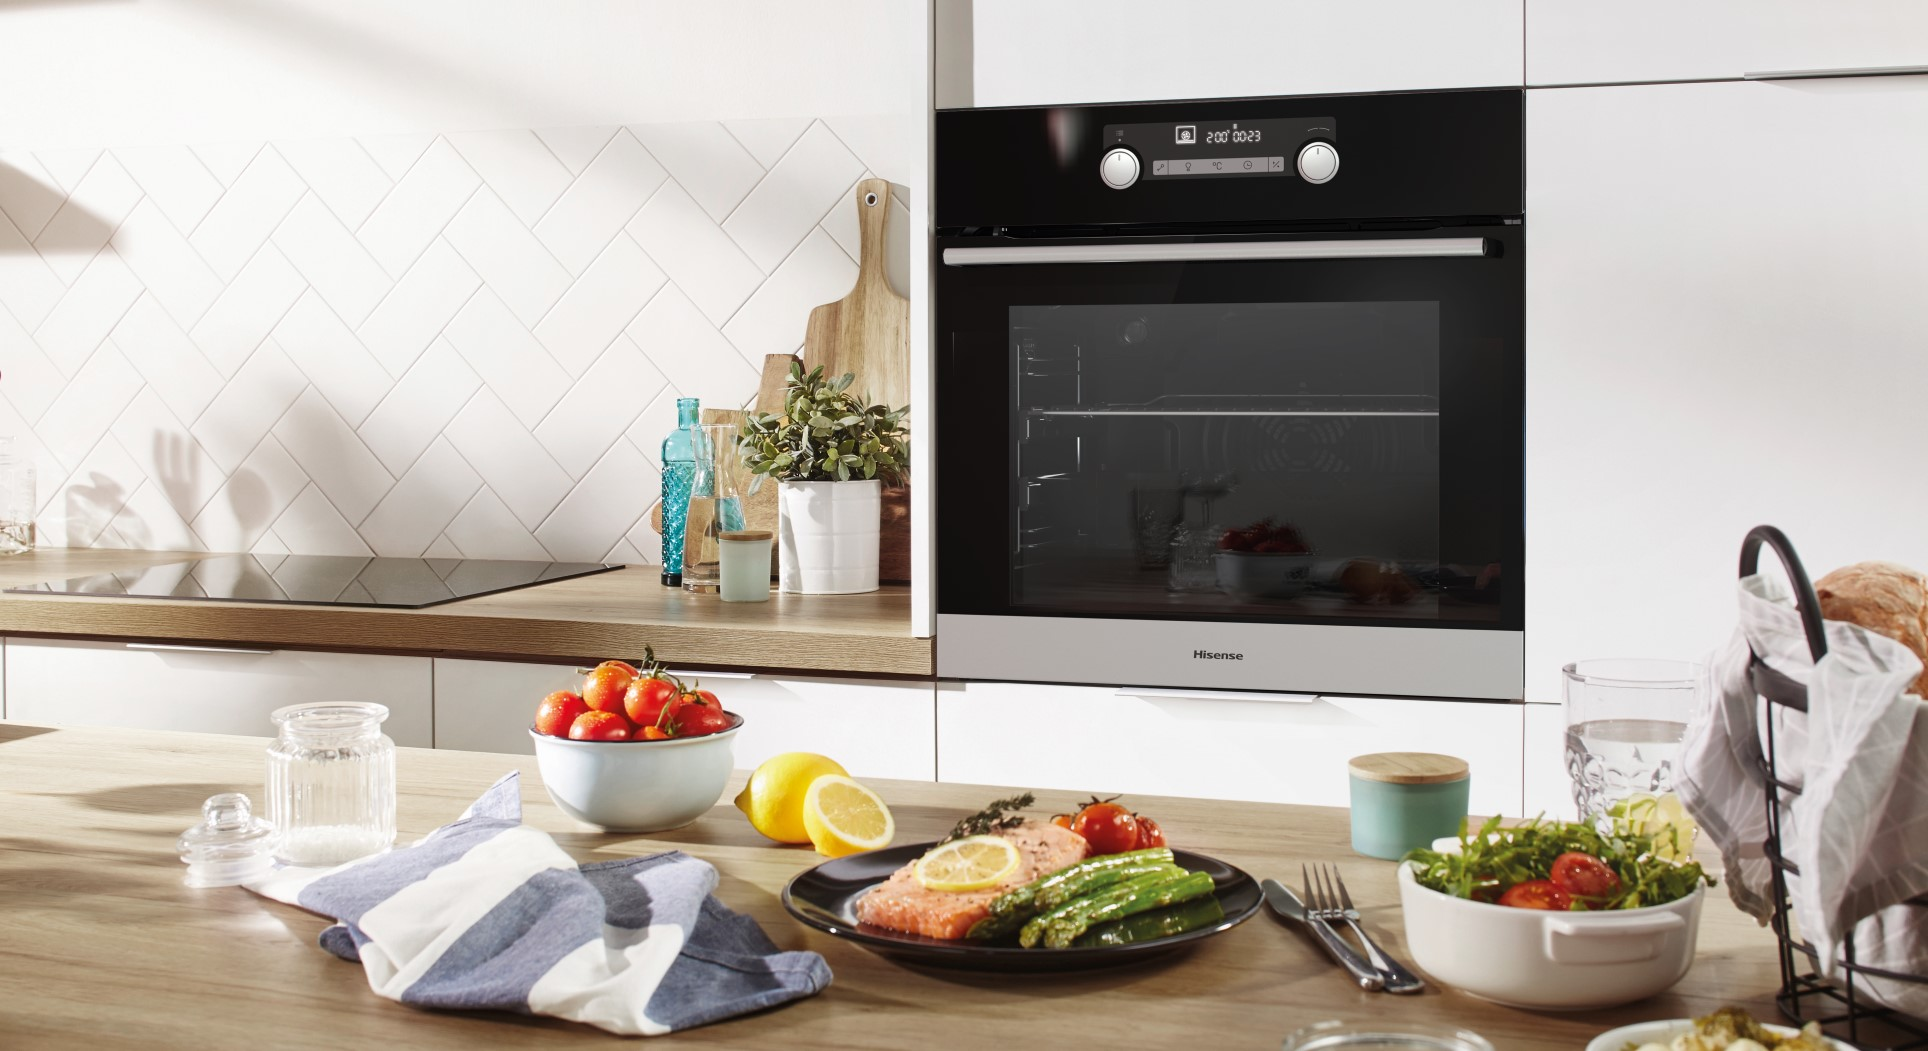 Hisense 600 mm Built-In Oven 3